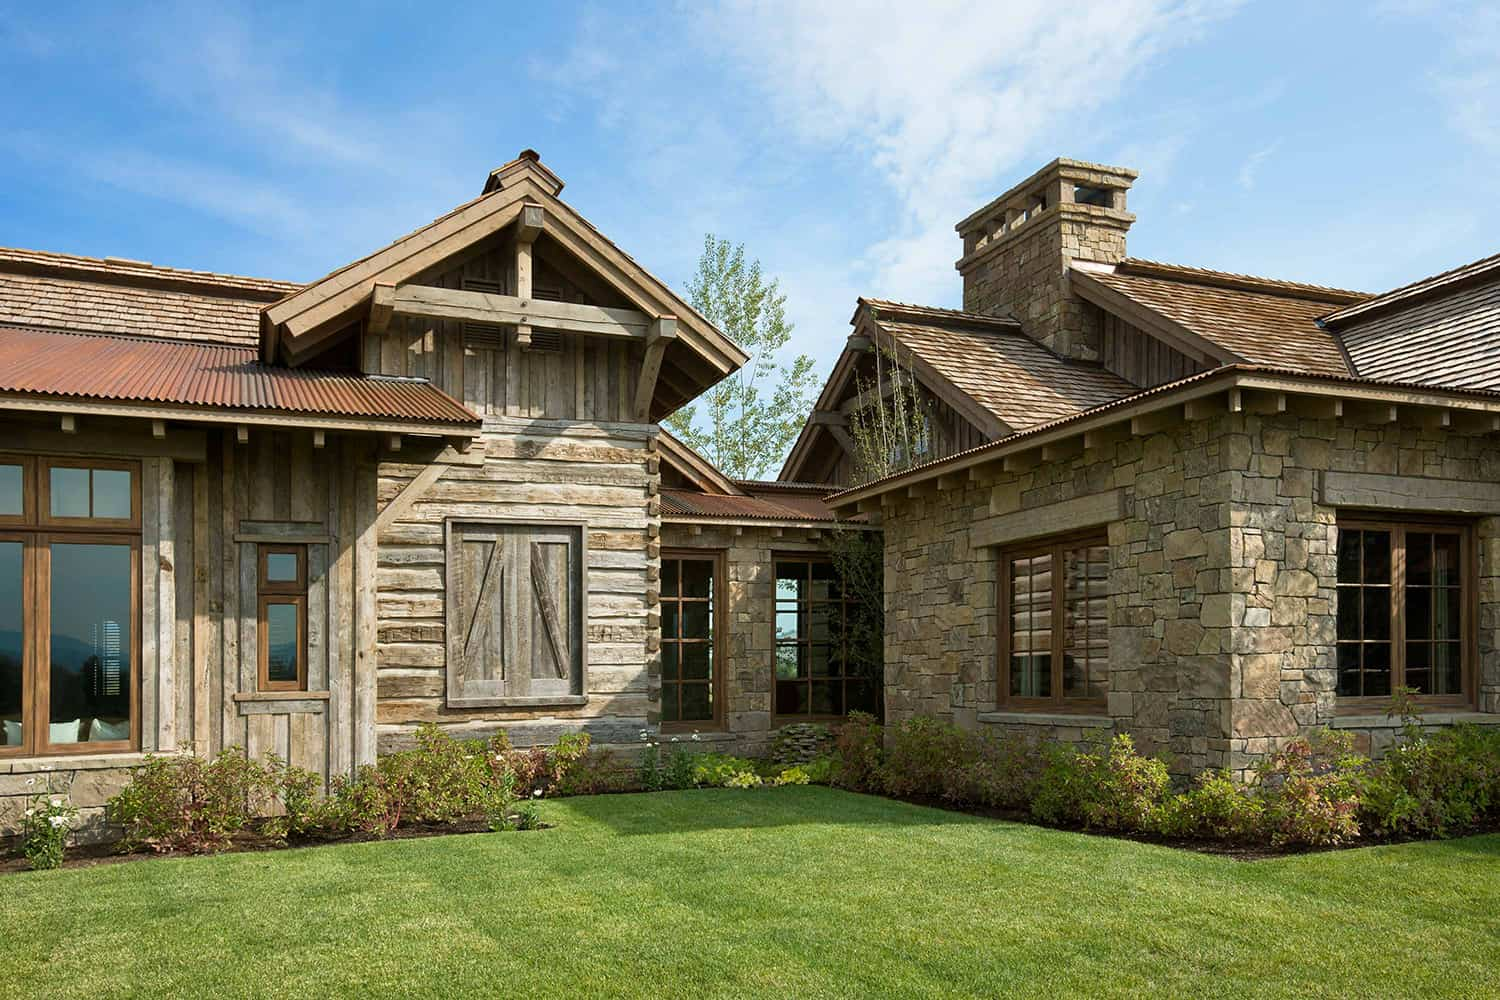 residence-rustic-exterior